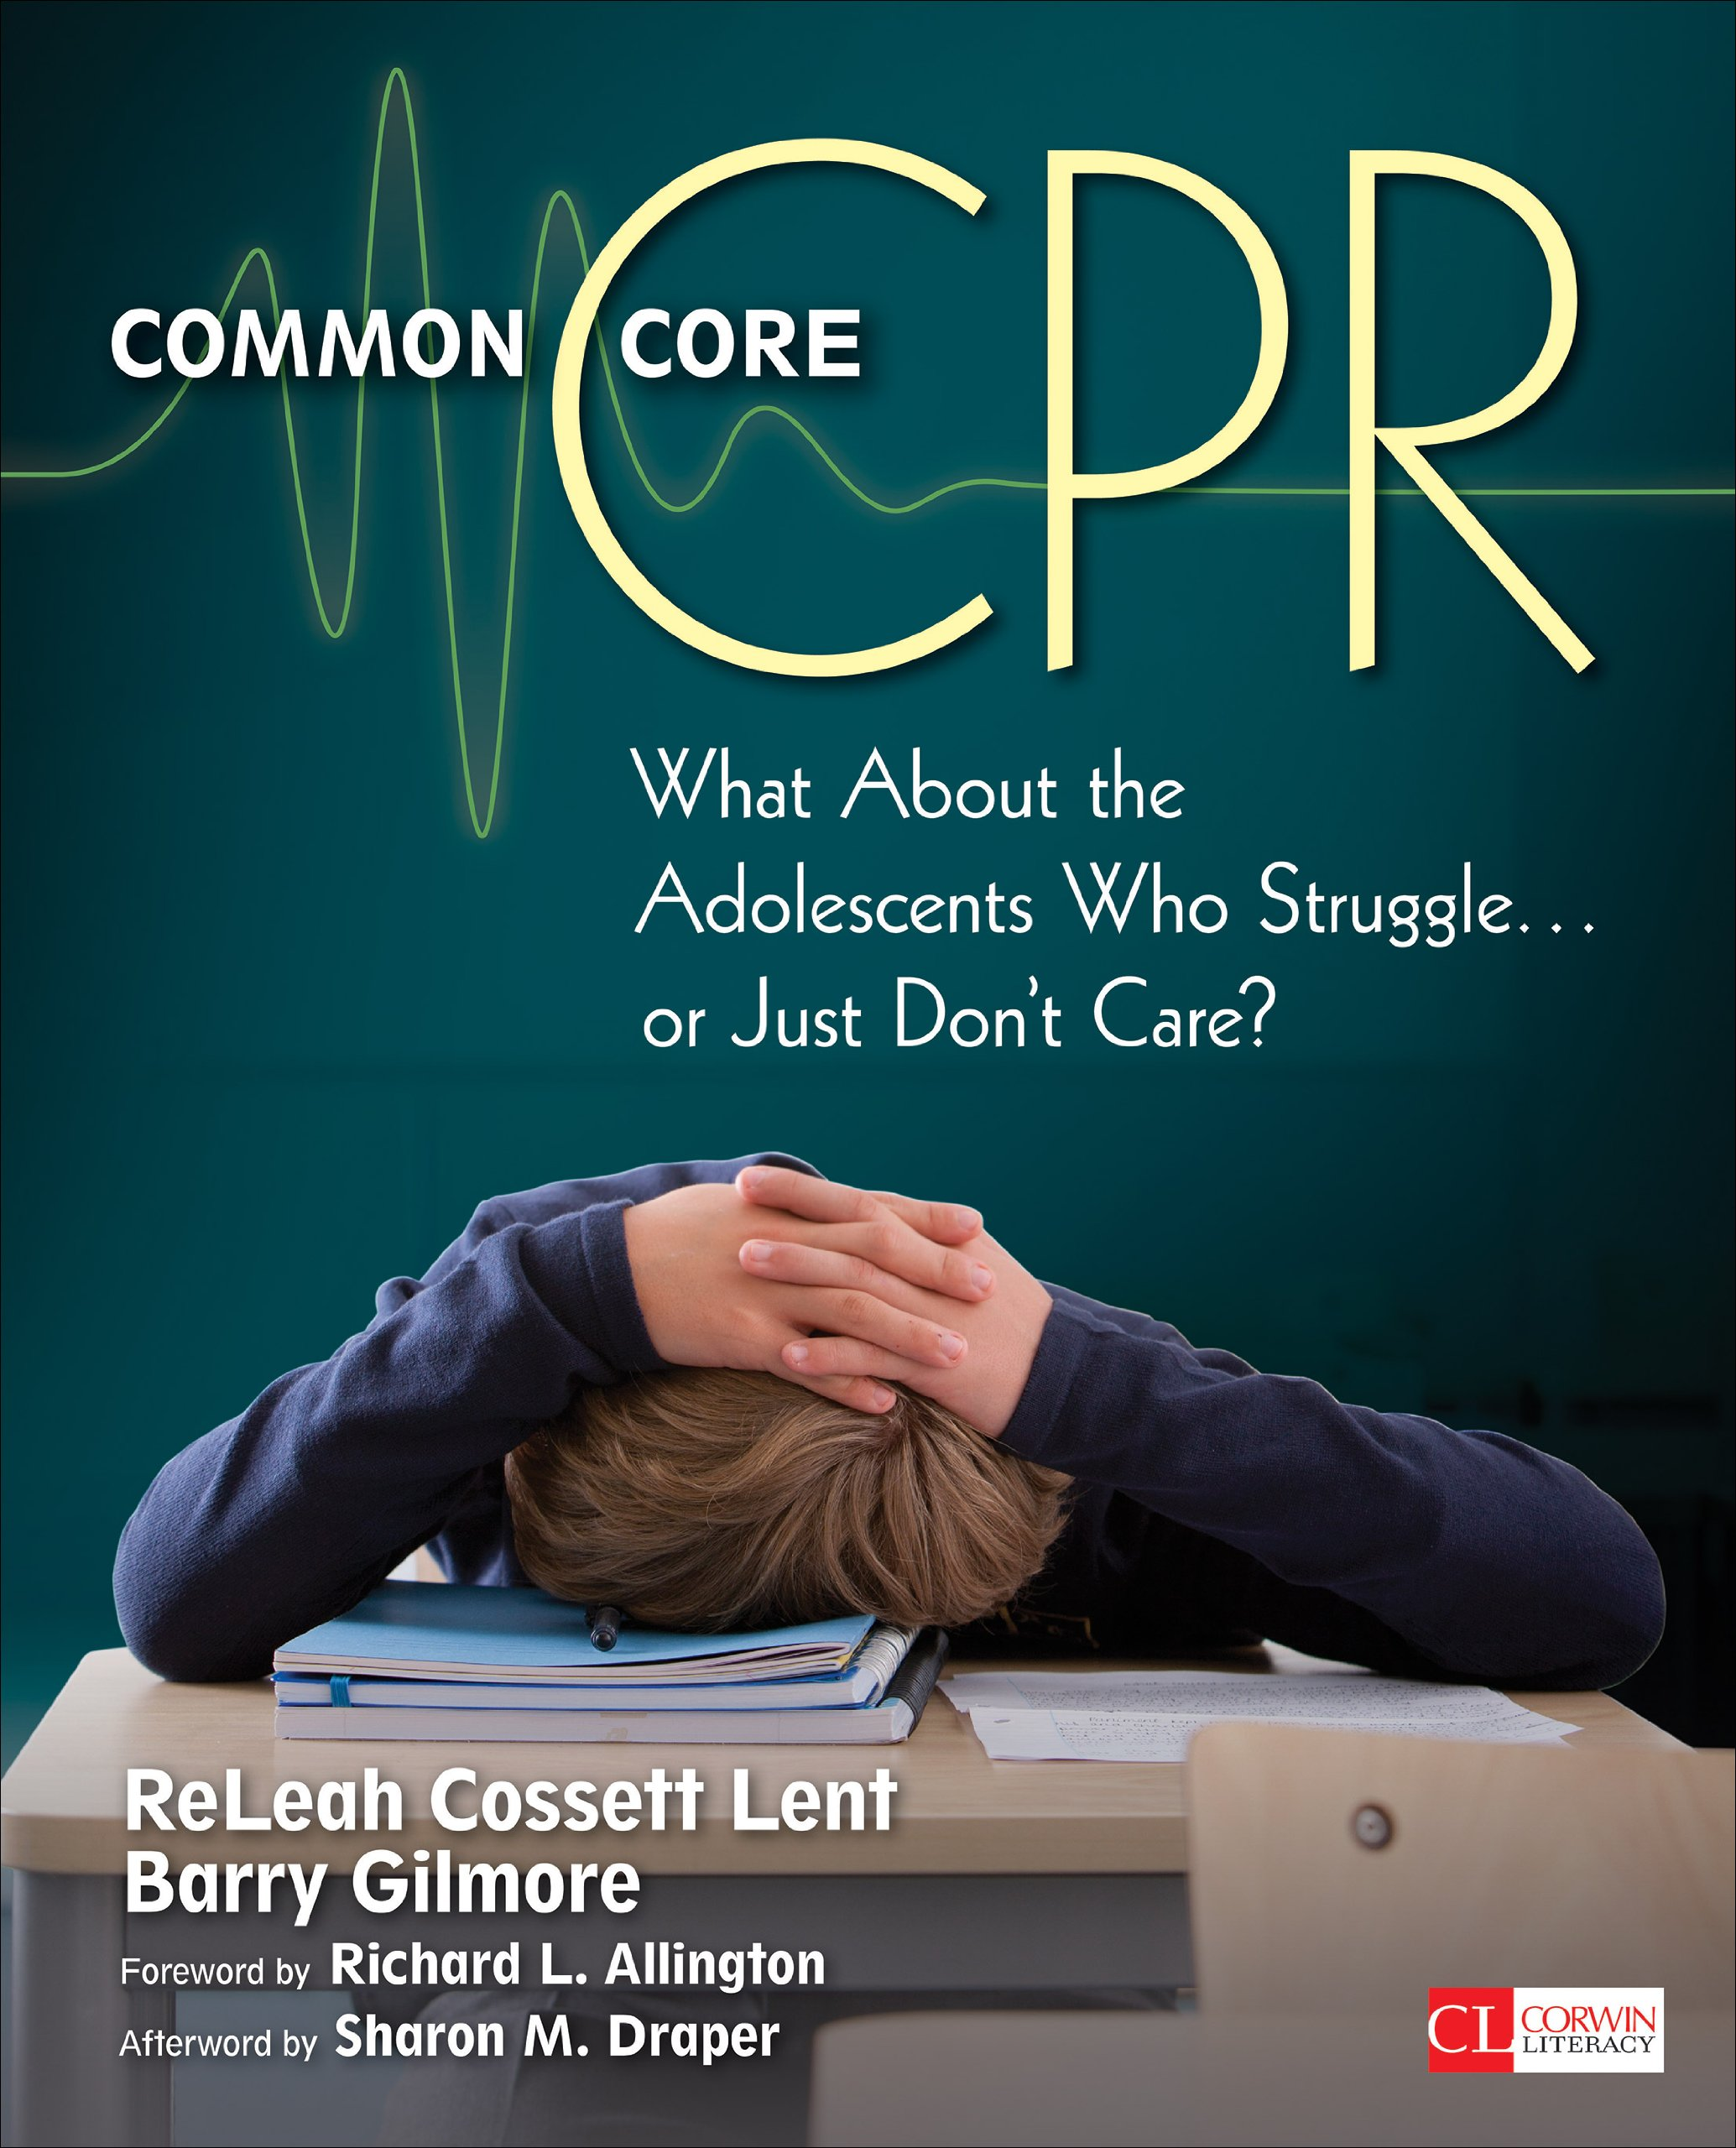 Common Core CPR: What About the Adolescents Who Struggle . . . or Just Don't Care? (Corwin Literacy)